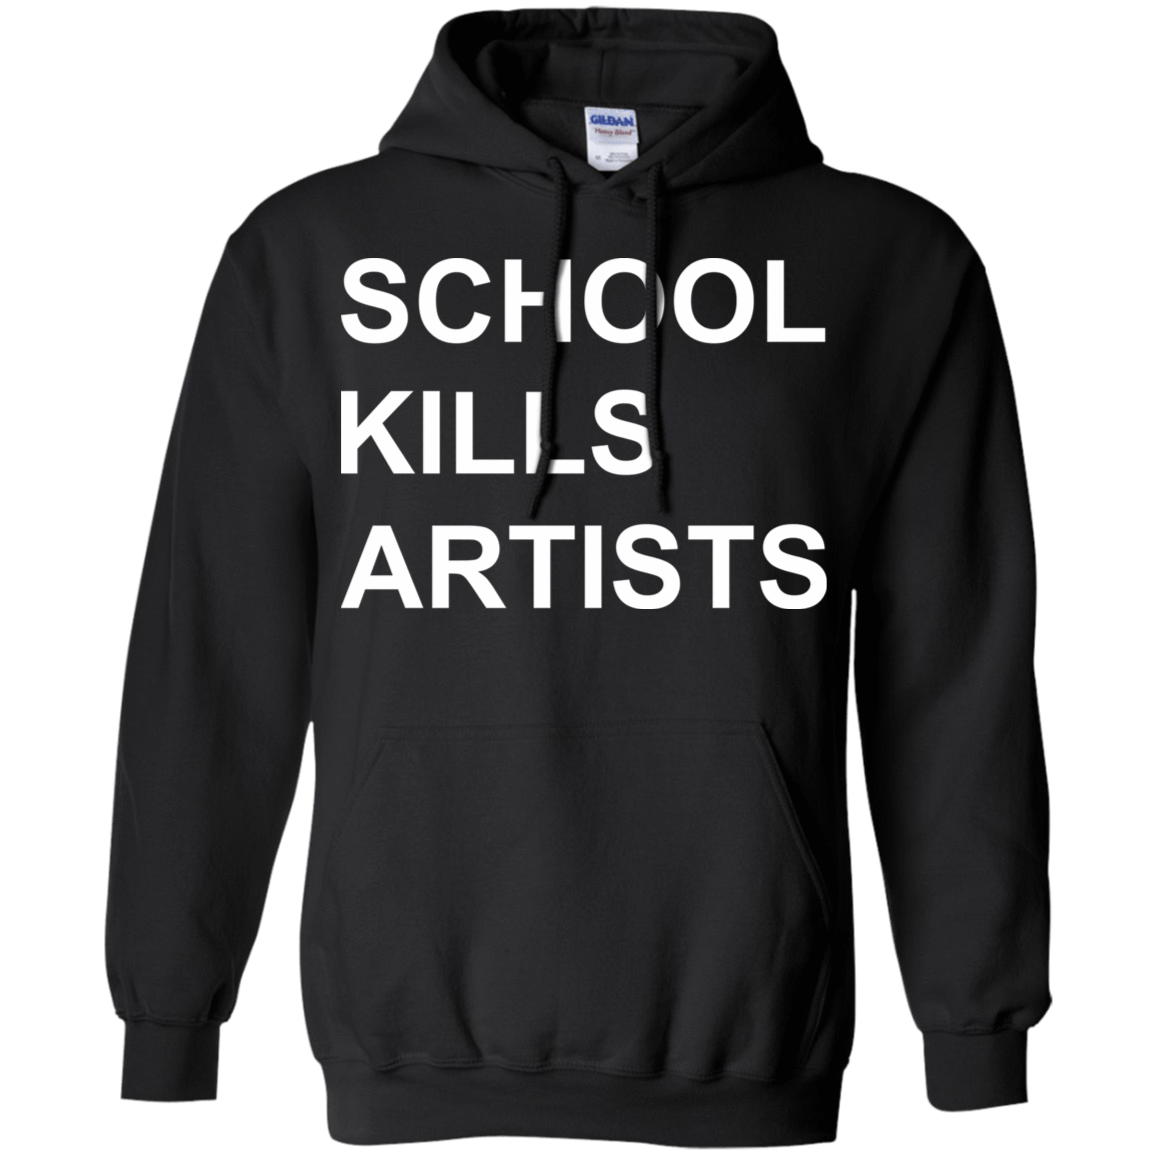 School Kills Artists 541-4740-71994030-23087 - Tee Ript